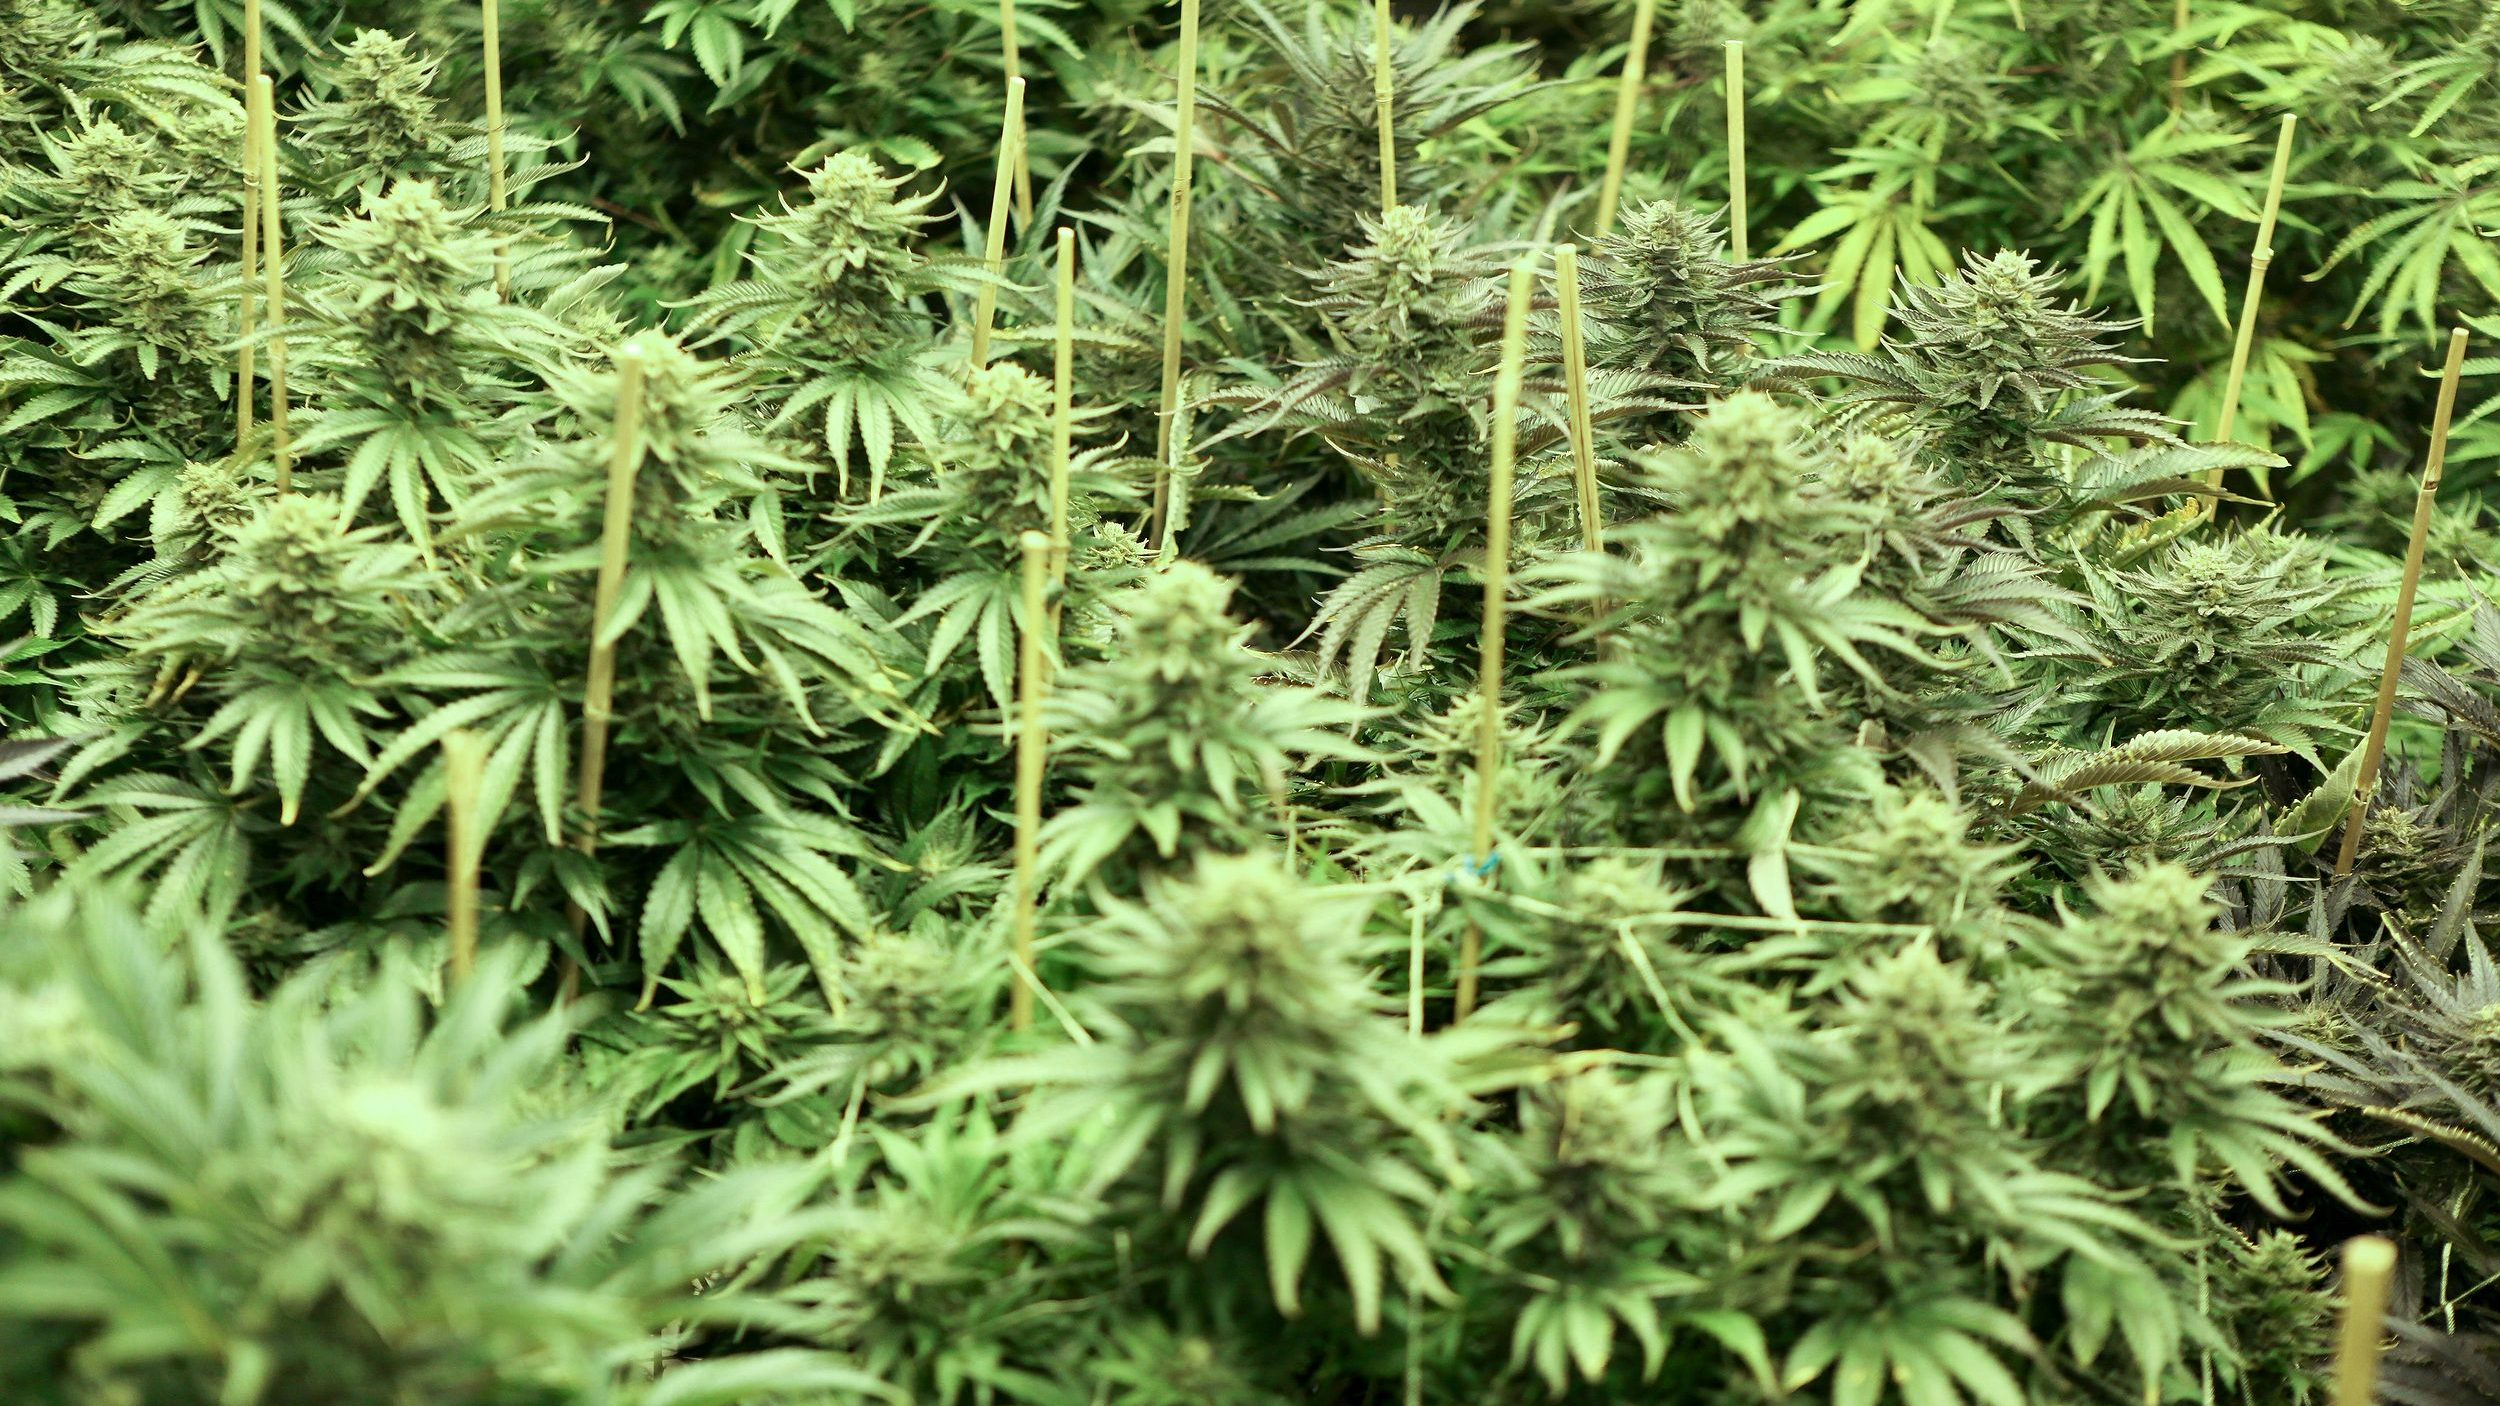 Cannabis plants that will soon be harvested grow at Northwest Patient Resource Center in Seattle